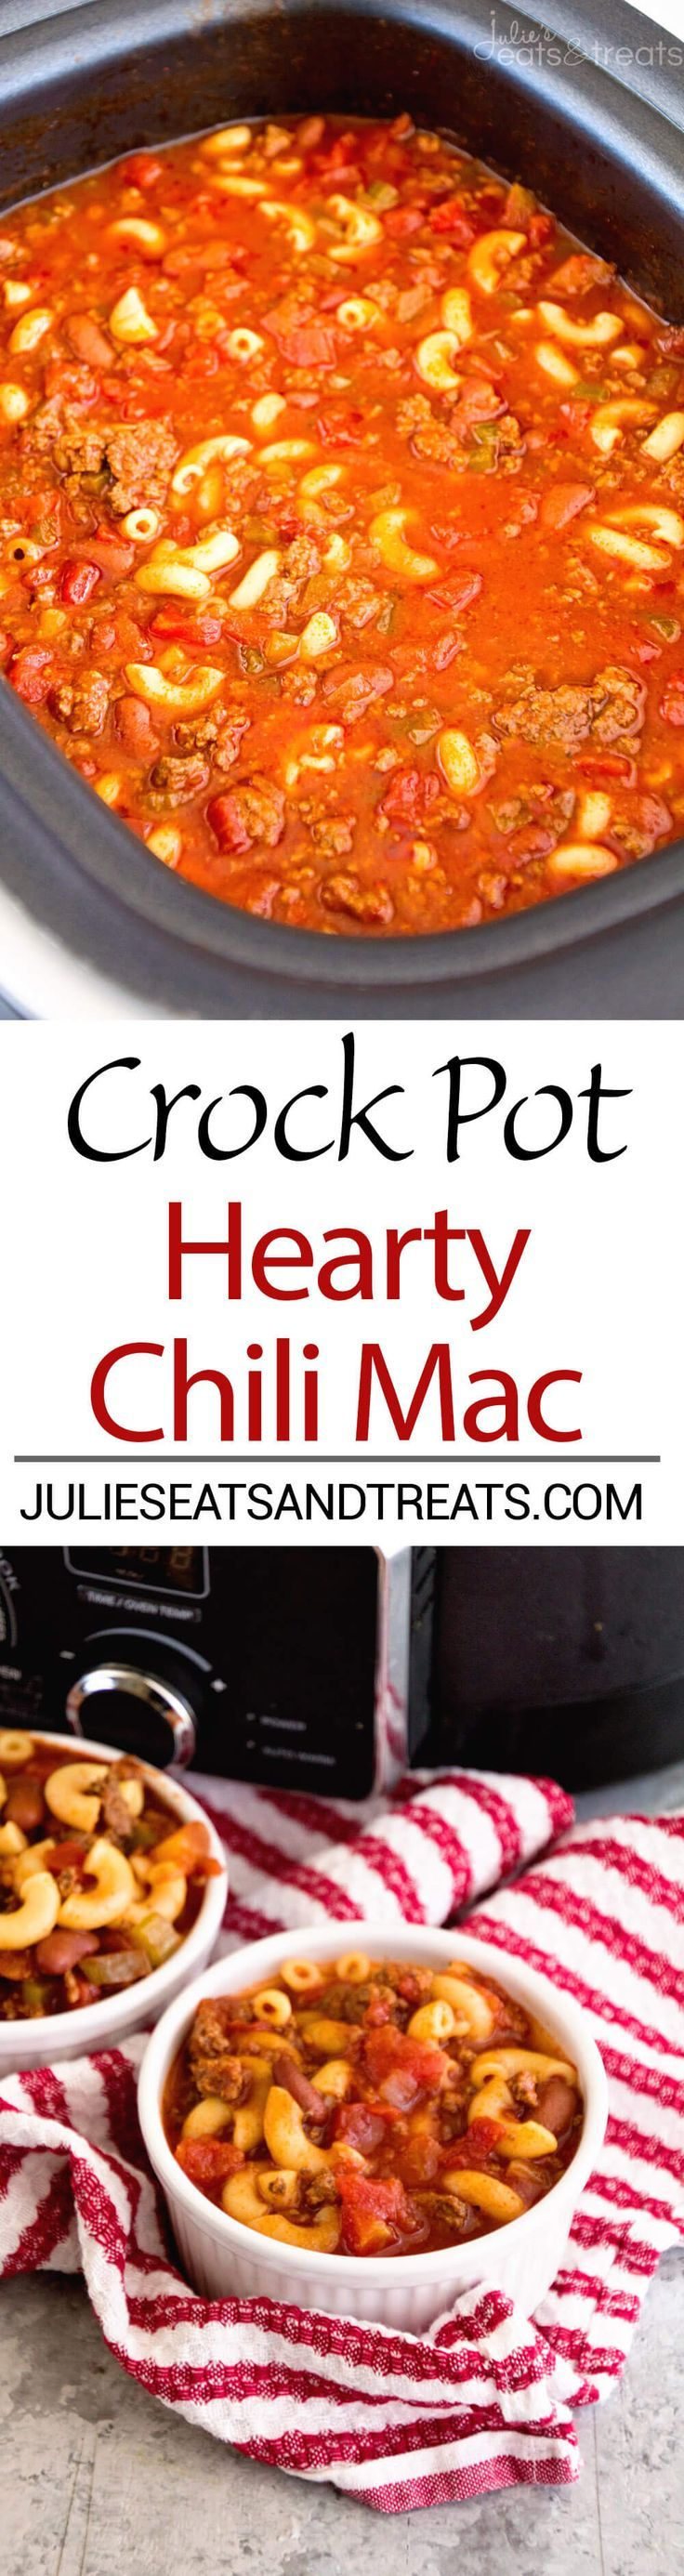 Crock Pot Hearty Chili Mac Recipe ~ Delicious Chili Slow Cooked All Day Long and Then Finished Off with Pasta! Hearty Comforting Meal for Dinner!